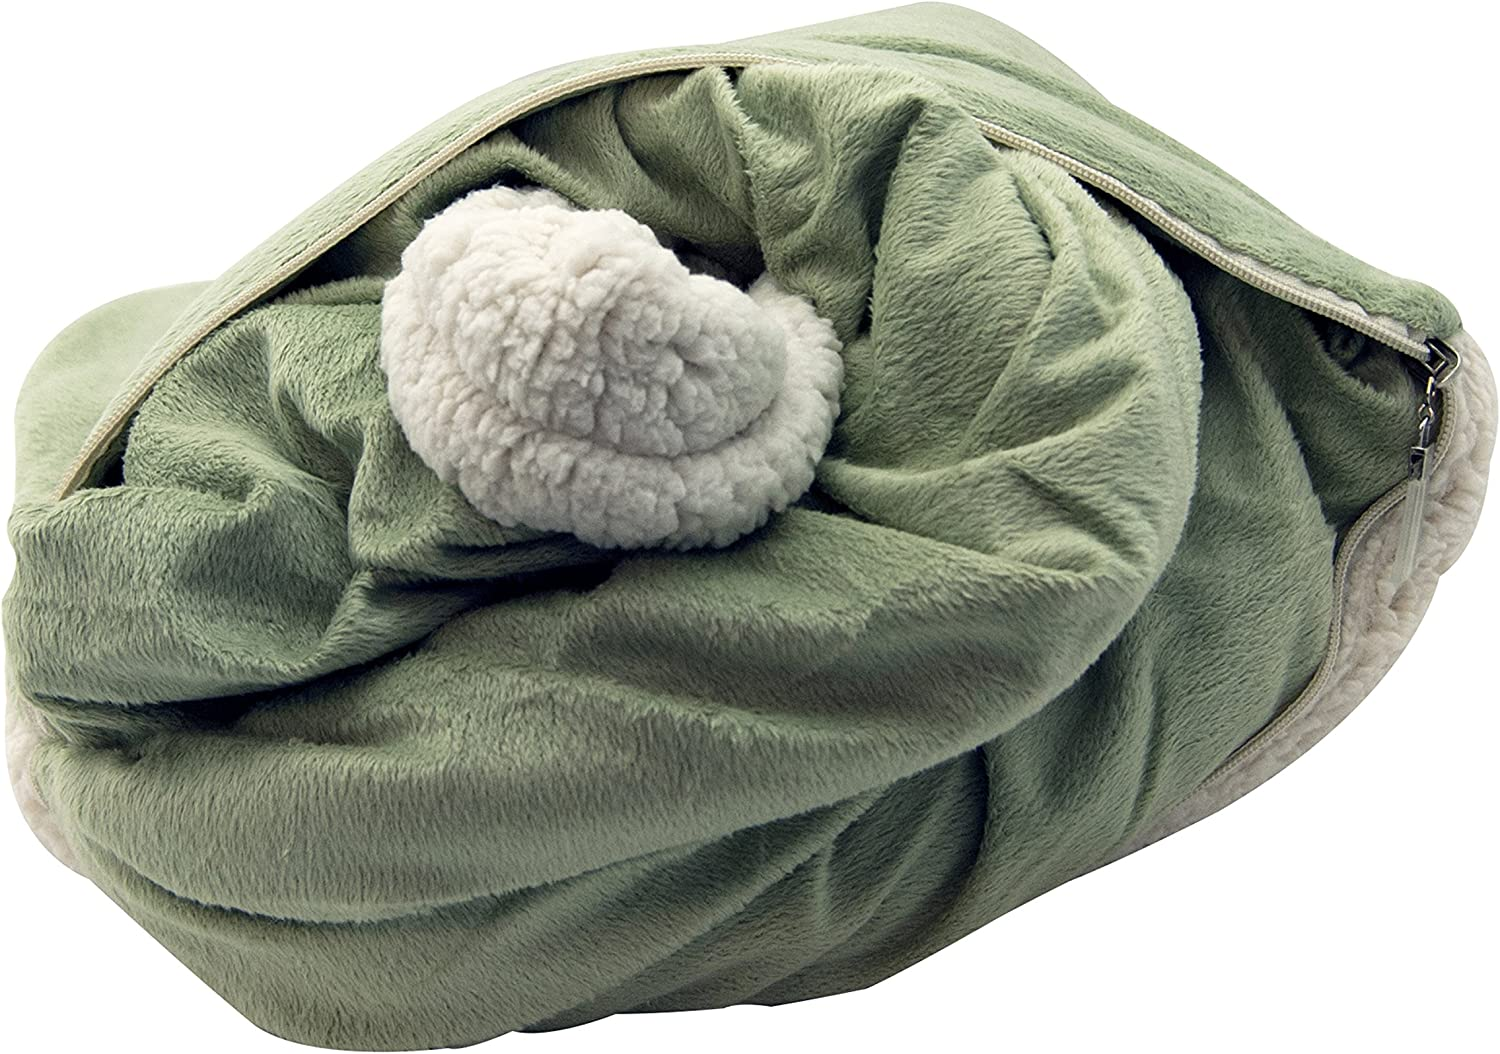 LCM Home Fashions Micro Mink/Sherpa Throw Blanket and Pillow, Sage